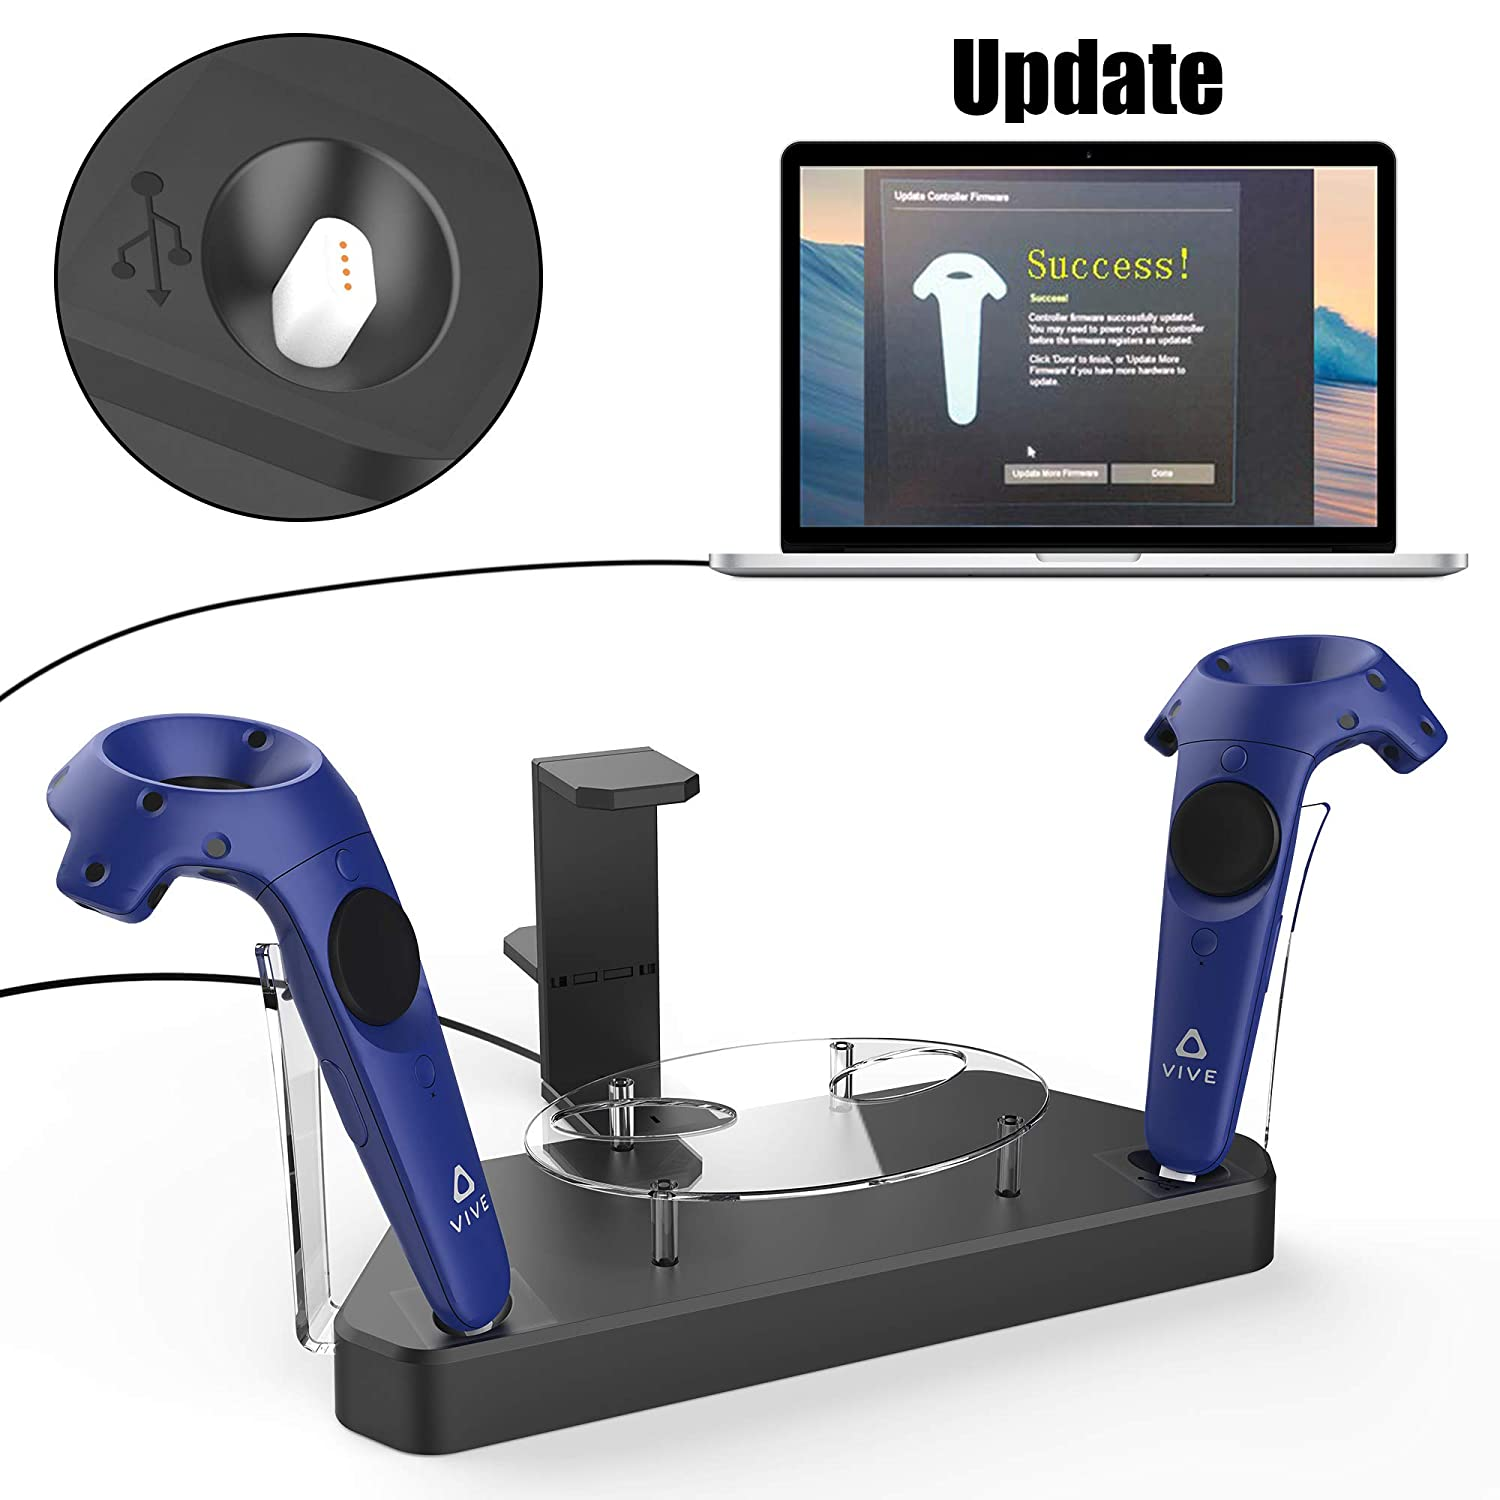 AFAITH VR Magnetic Charging Stand Station for HTC Vive & Pro ...